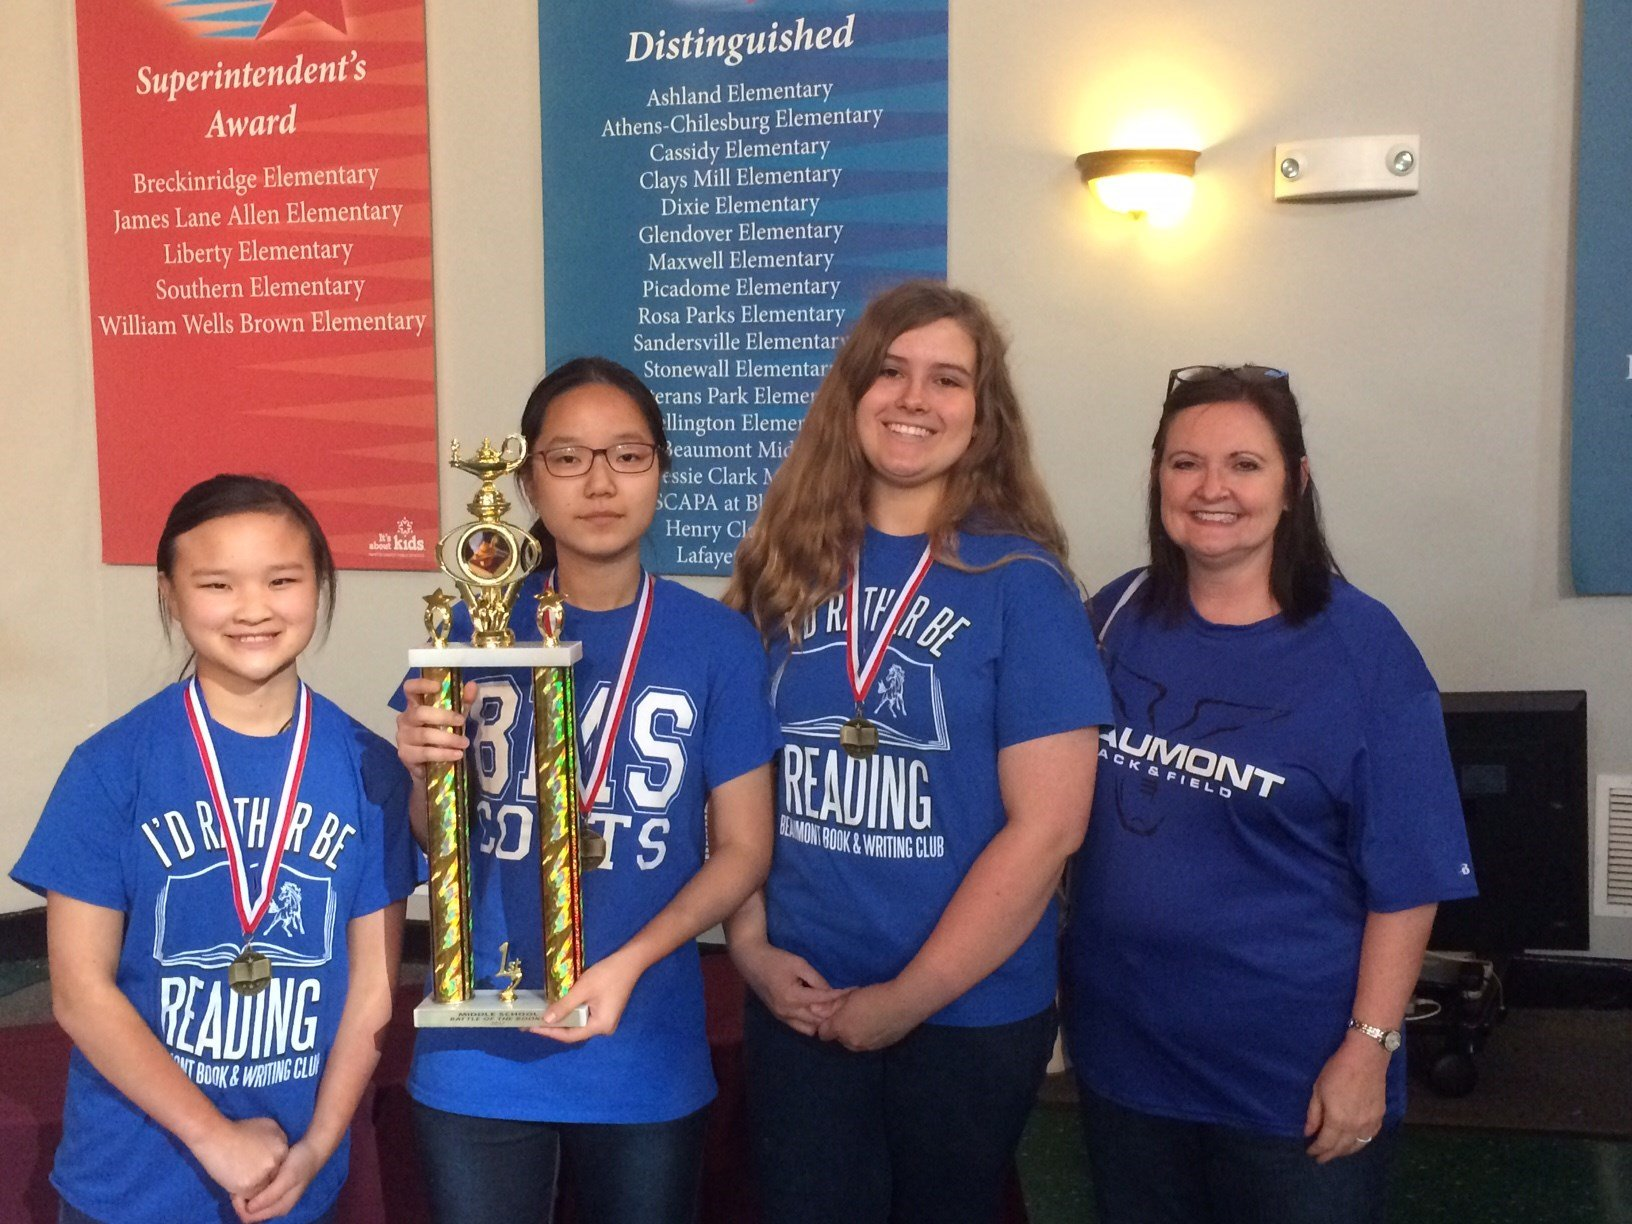 Battle of the Books - Beaumont Middle School and Gardensprings Elementary take home the division trophies